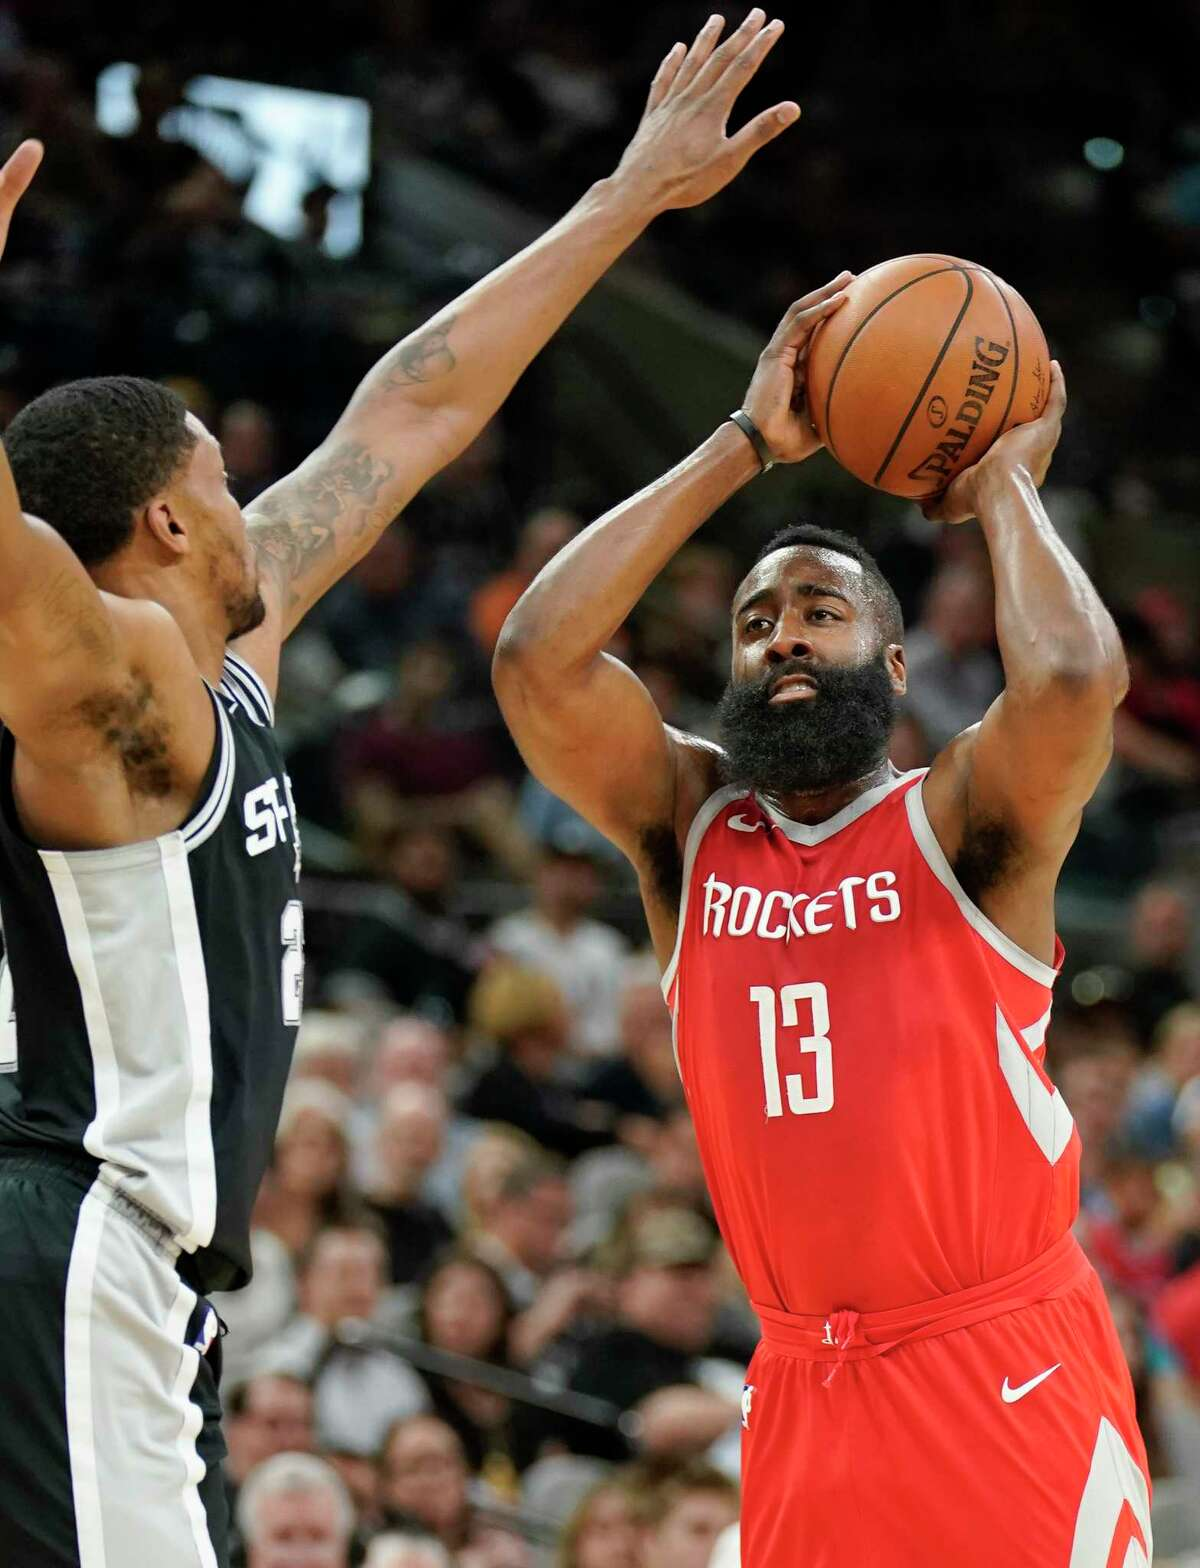 Houston Rockets' James Harden (13) attempts to shoot against San Antonio Spurs' Rudy Gay during the first half of an NBA basketball game, Sunday, April 1, 2018, in San Antonio. (AP Photo/Darren Abate)